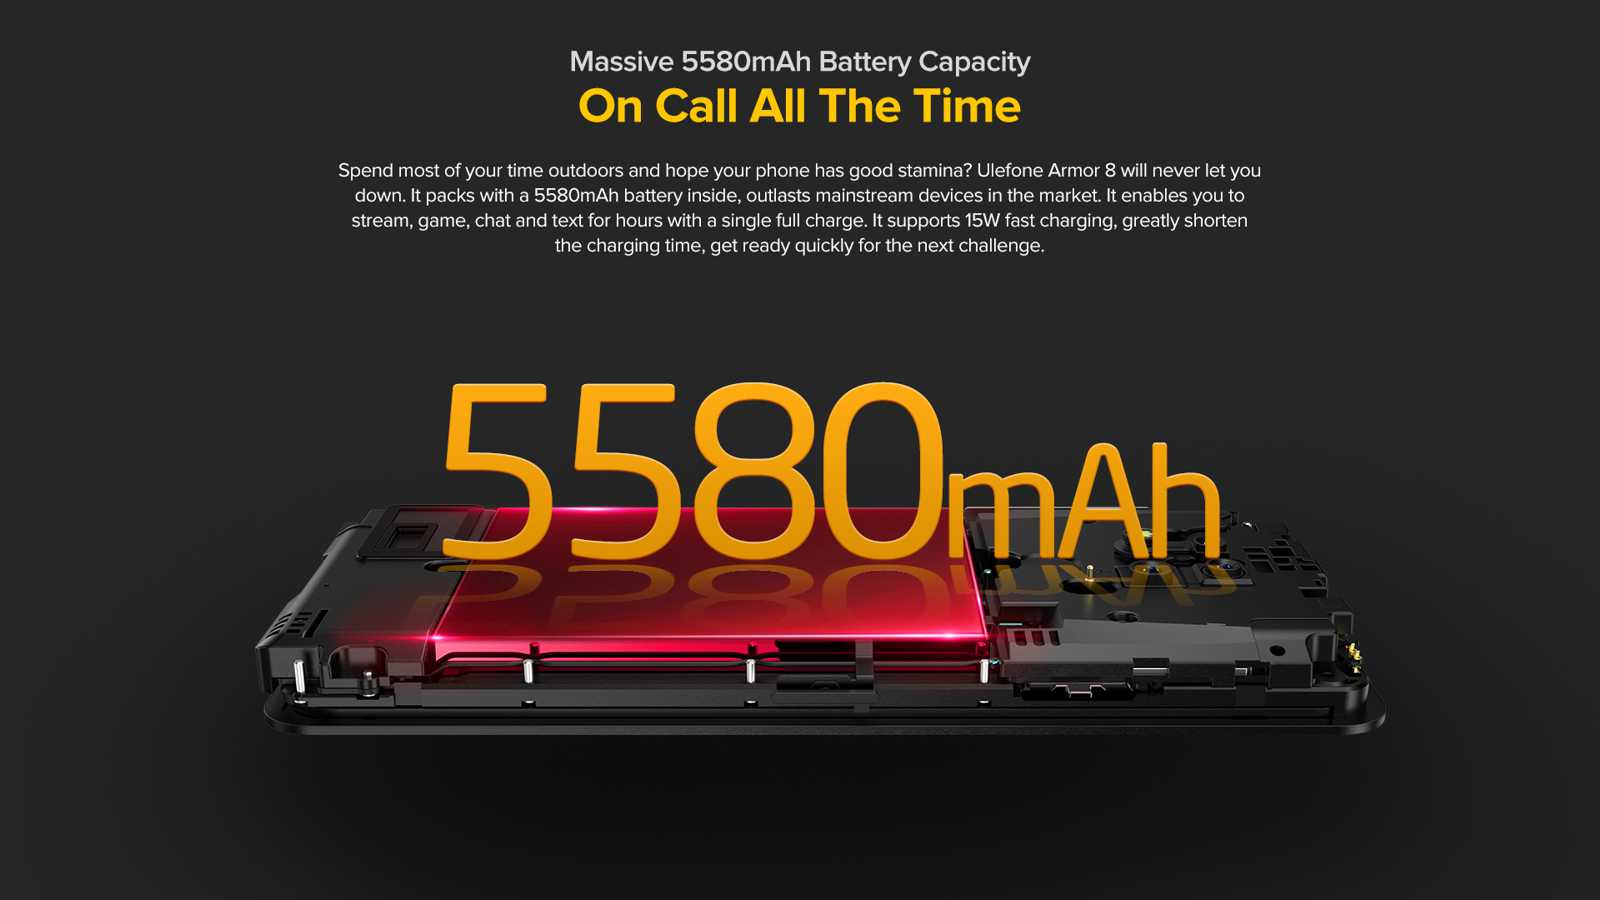 5580mAh battery capacity